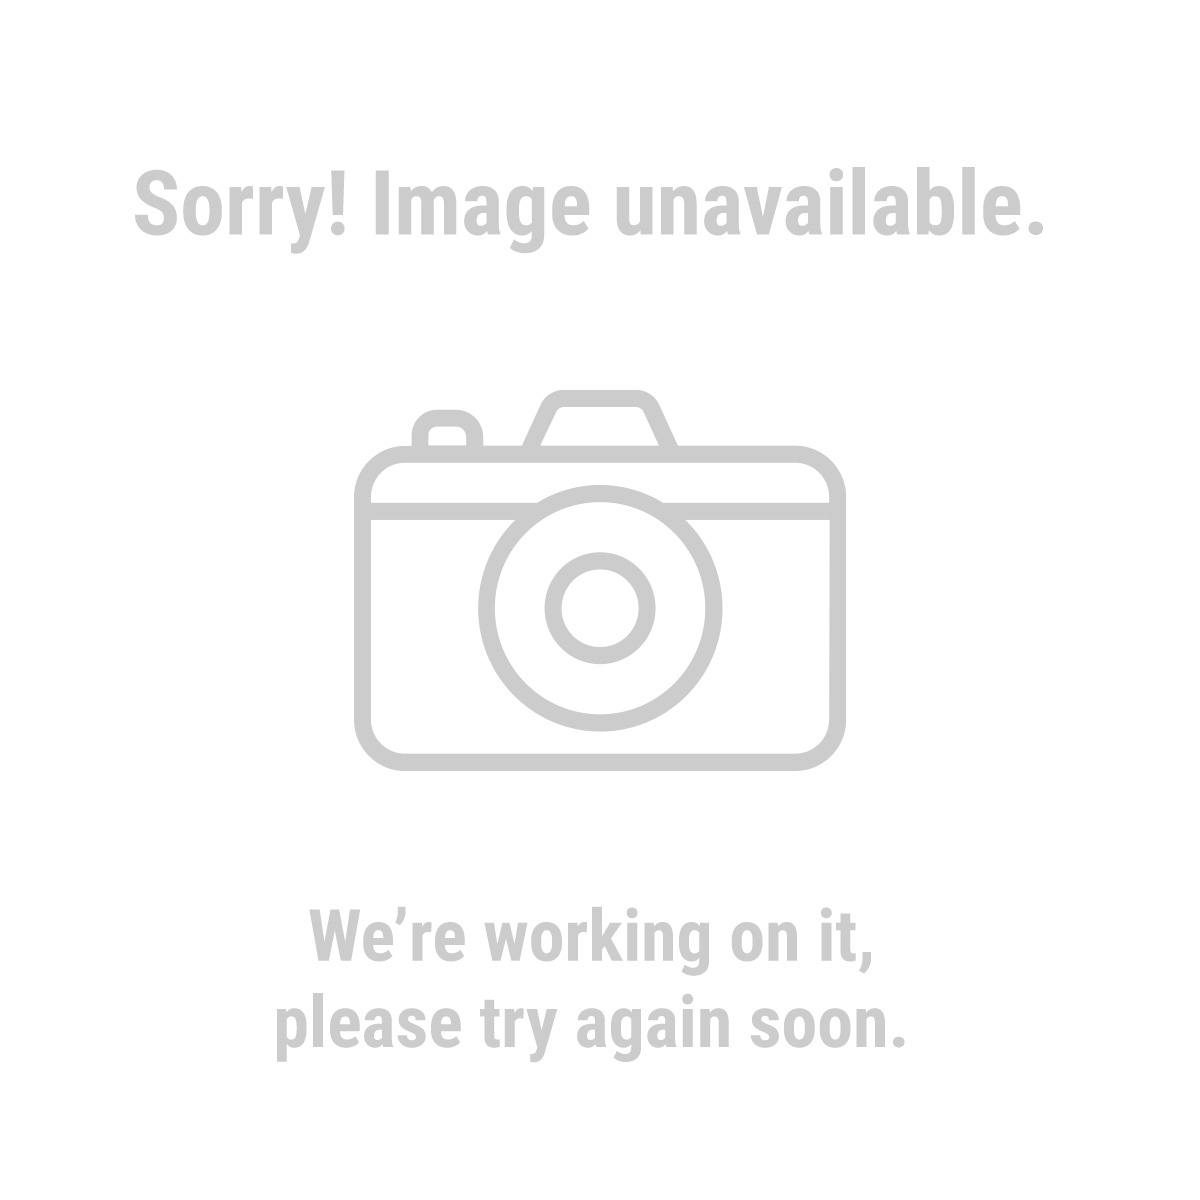 Chicago Electric Power Tools 45069 25 Ft. Outdoor Extension Cord, Orange